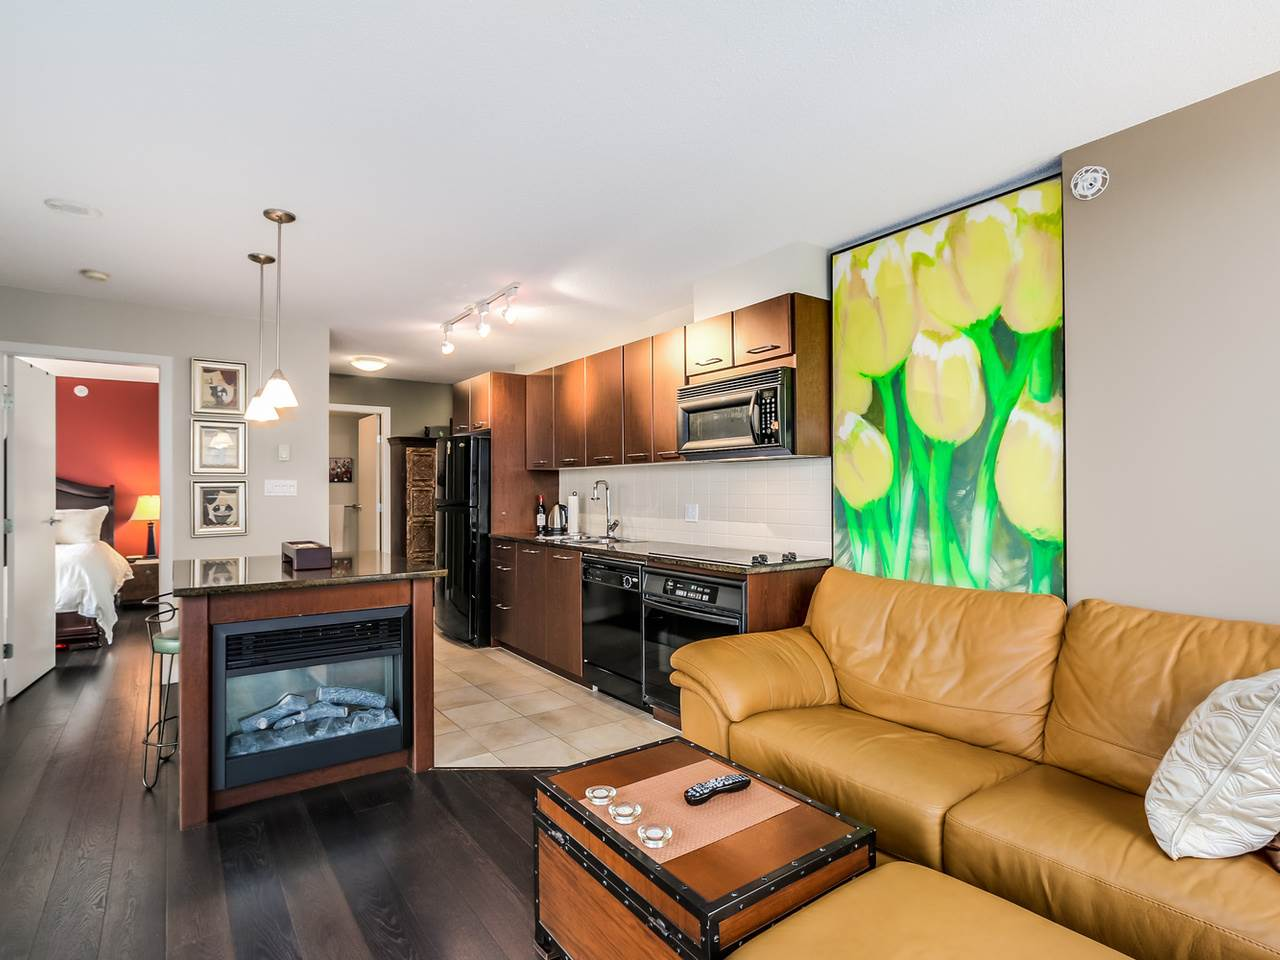 Photo 2: 2308 1155 SEYMOUR STREET in Vancouver: Downtown VW Condo for sale (Vancouver West)  : MLS® # R2026499